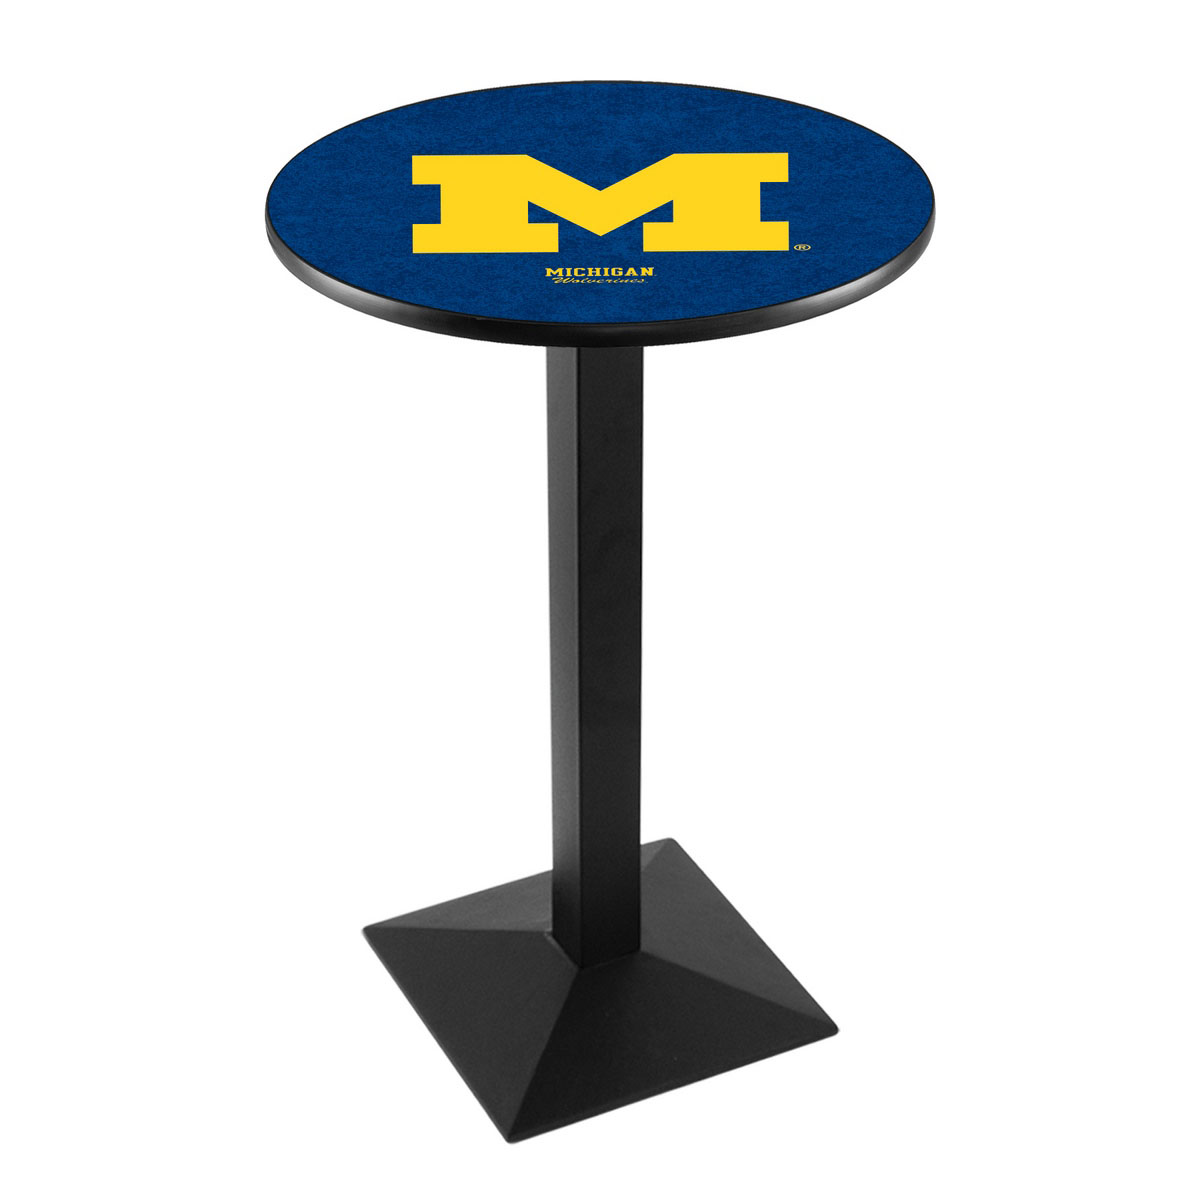 Info about University Michigan Logo Pub Bar Table Square Stand Product Photo